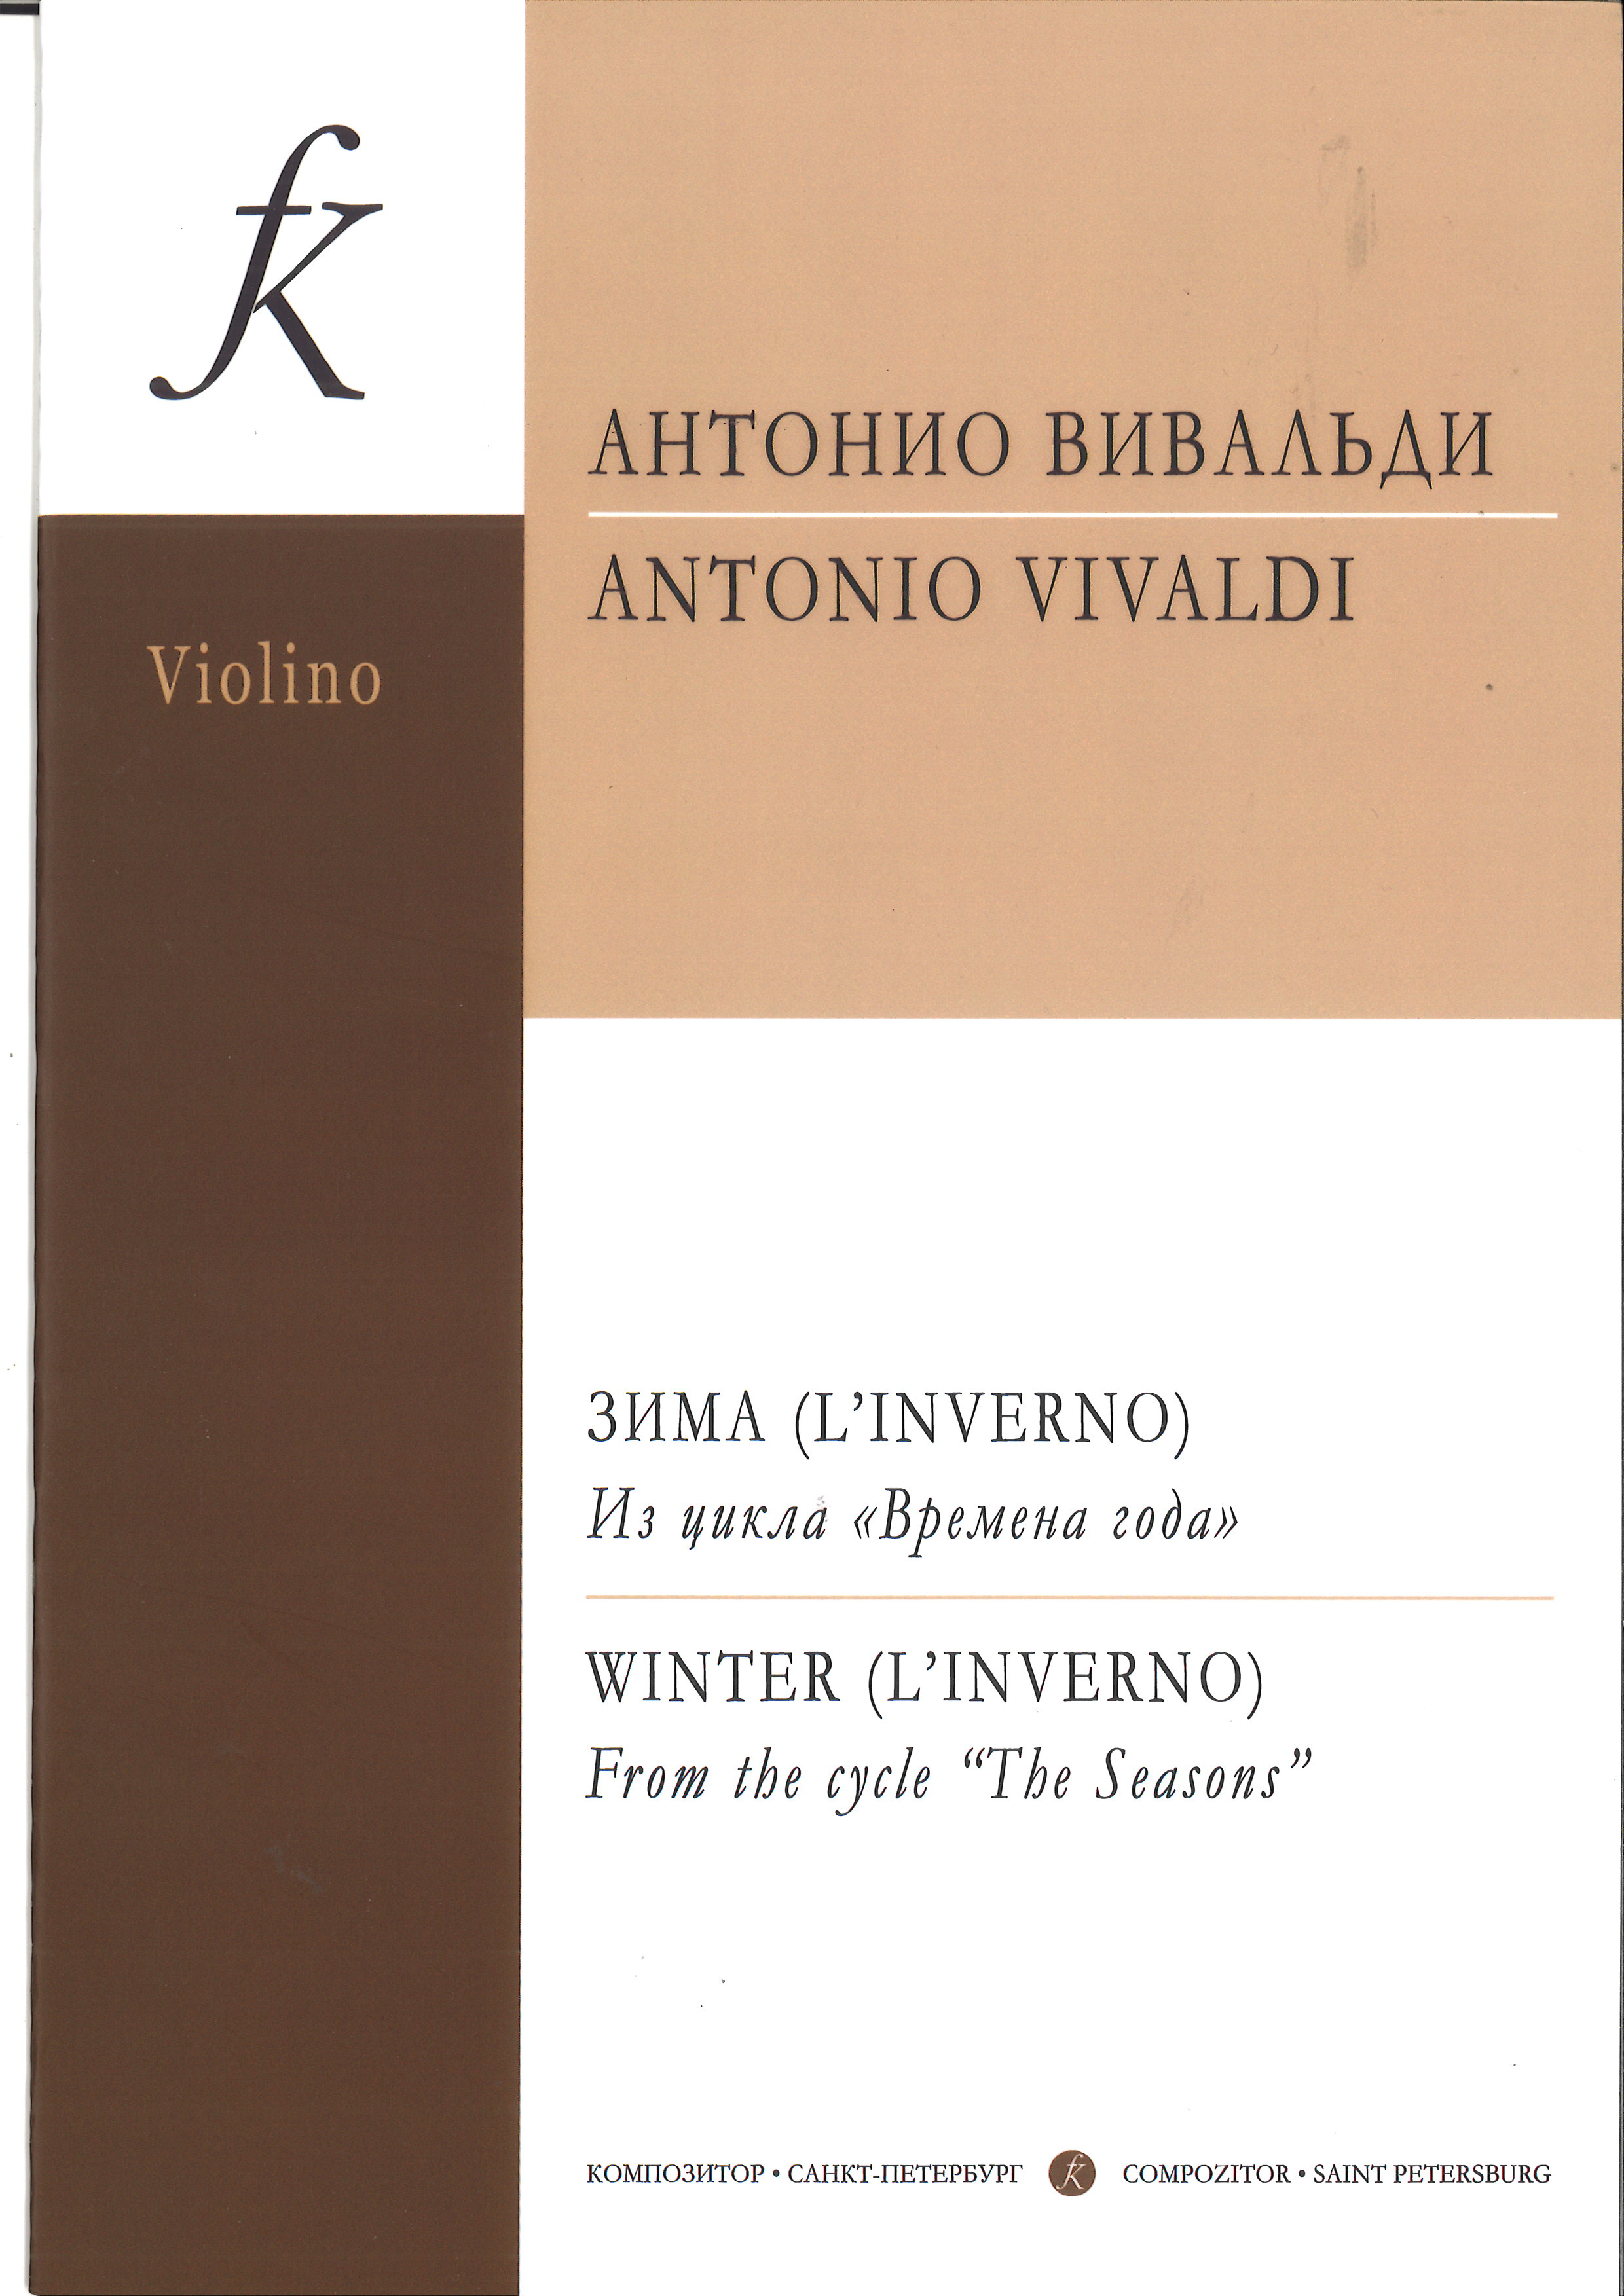 Concerto Winter (L Inverno). From the cycle The Seasons. Arranged for violin and piano